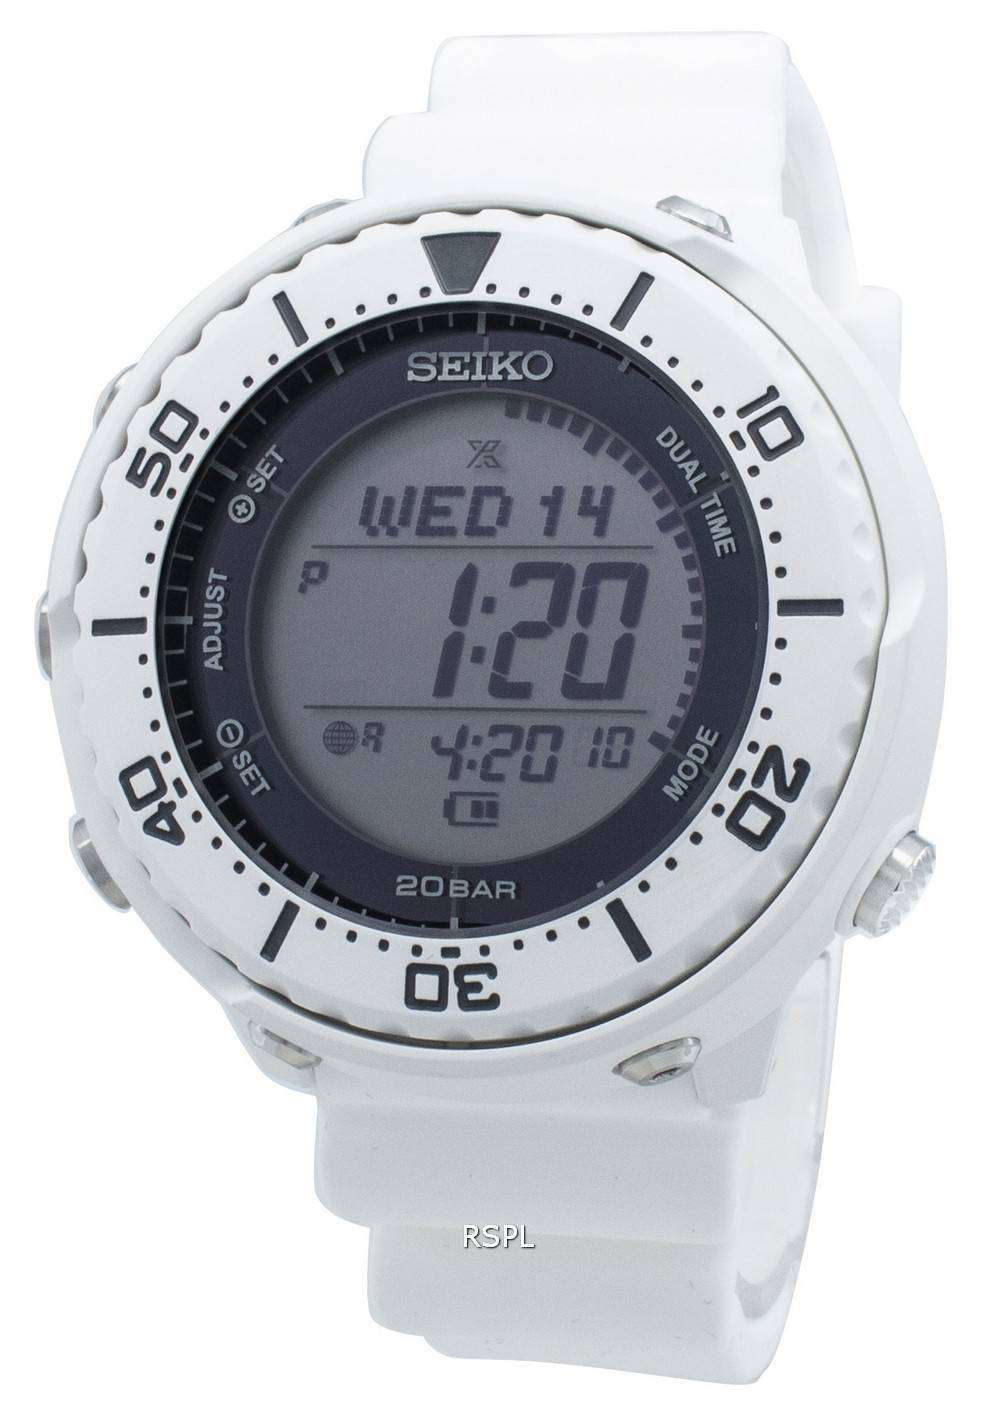 Seiko Prospex SBEP01 SBEP011 SBEP0 Solar Men's Watch